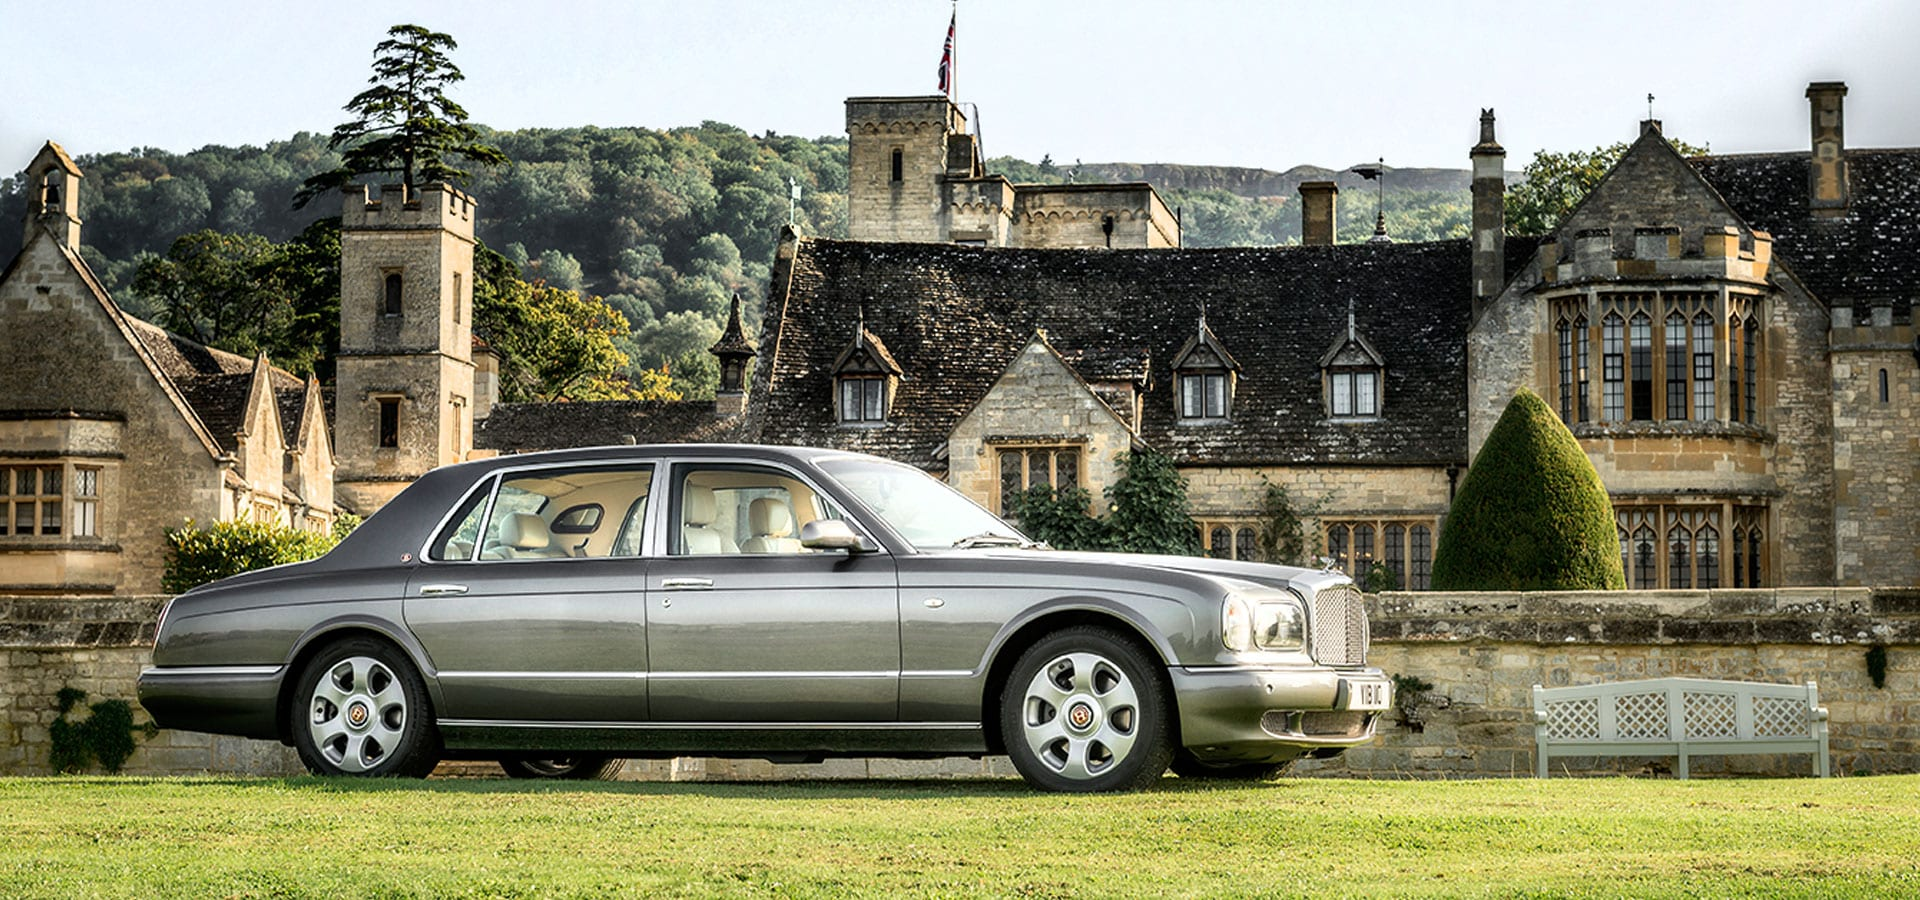 Bentley Arnage wedding car outside Ellenborough Park, Cheltenham